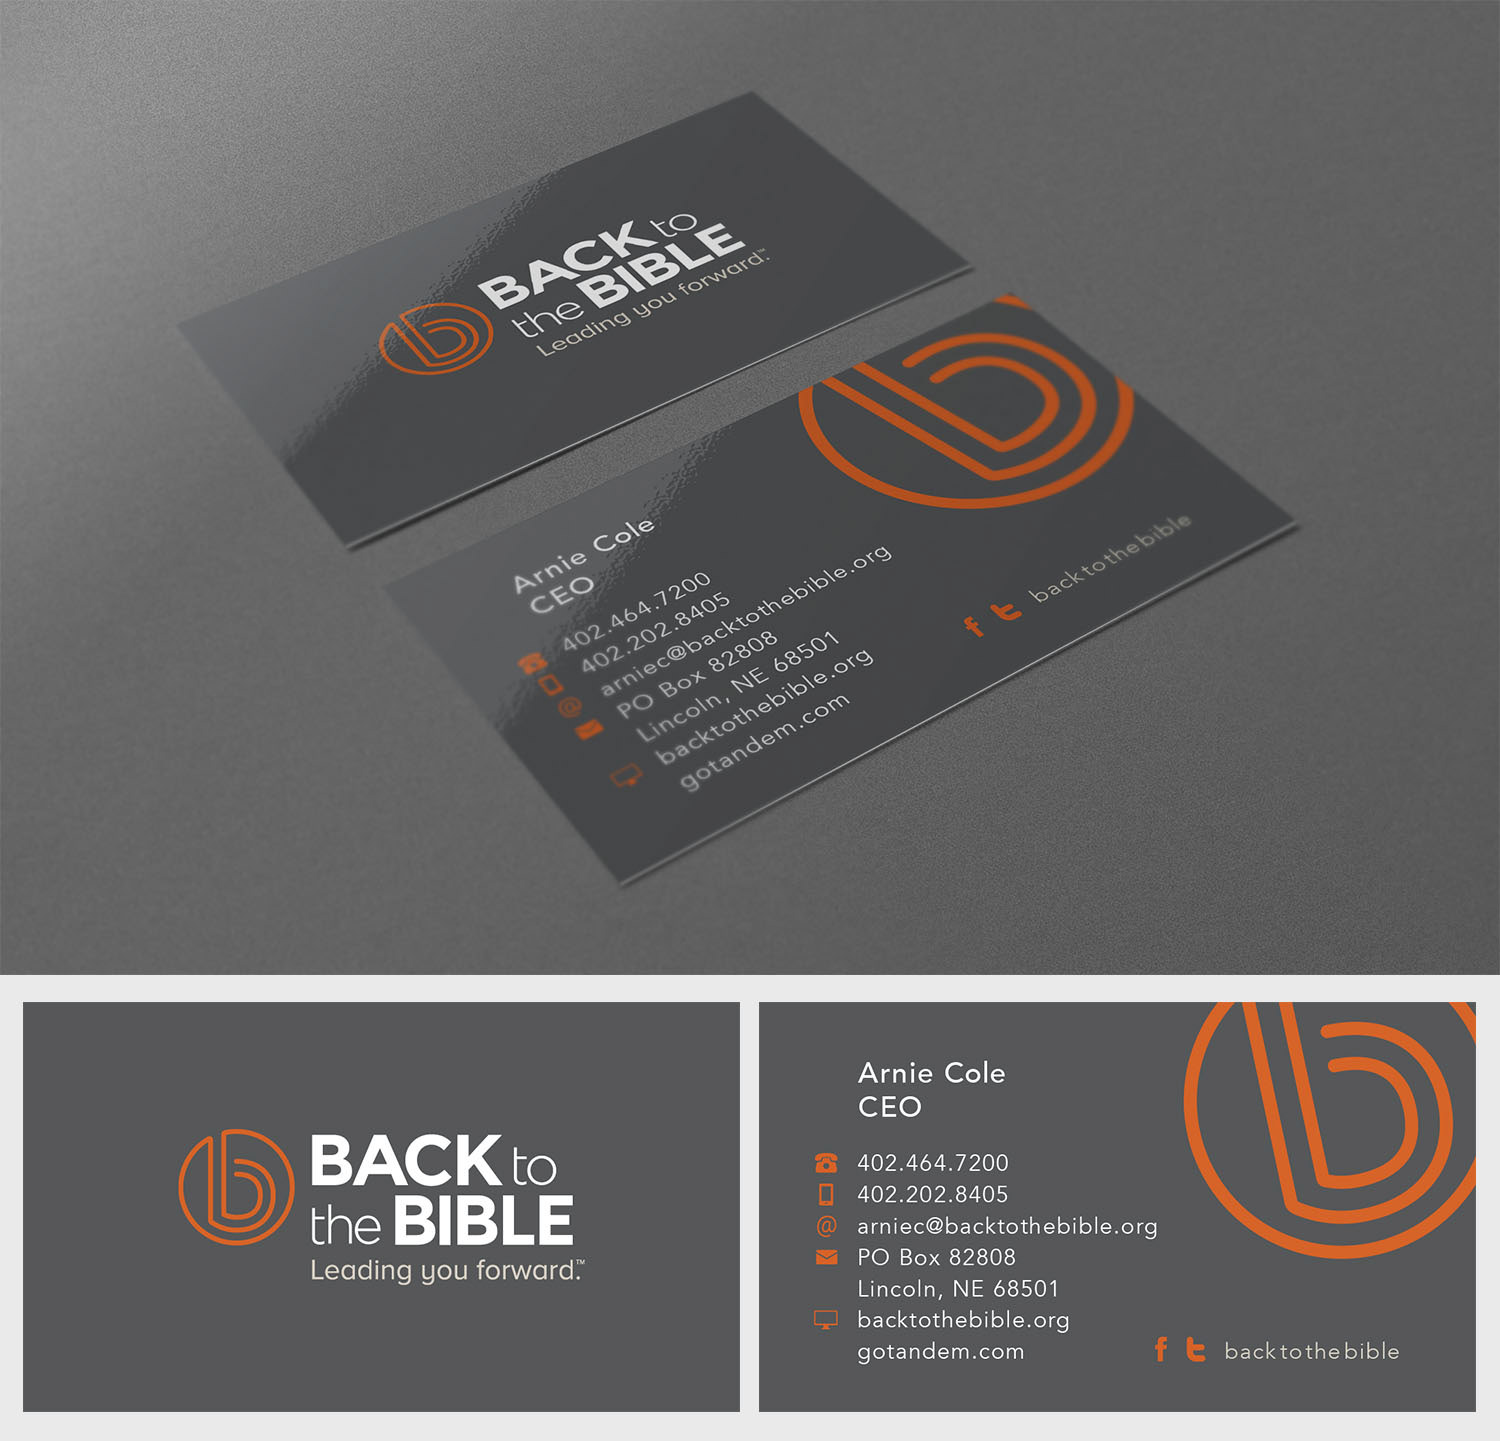 Simpatico by Designs - Back to the Bible Business Cards